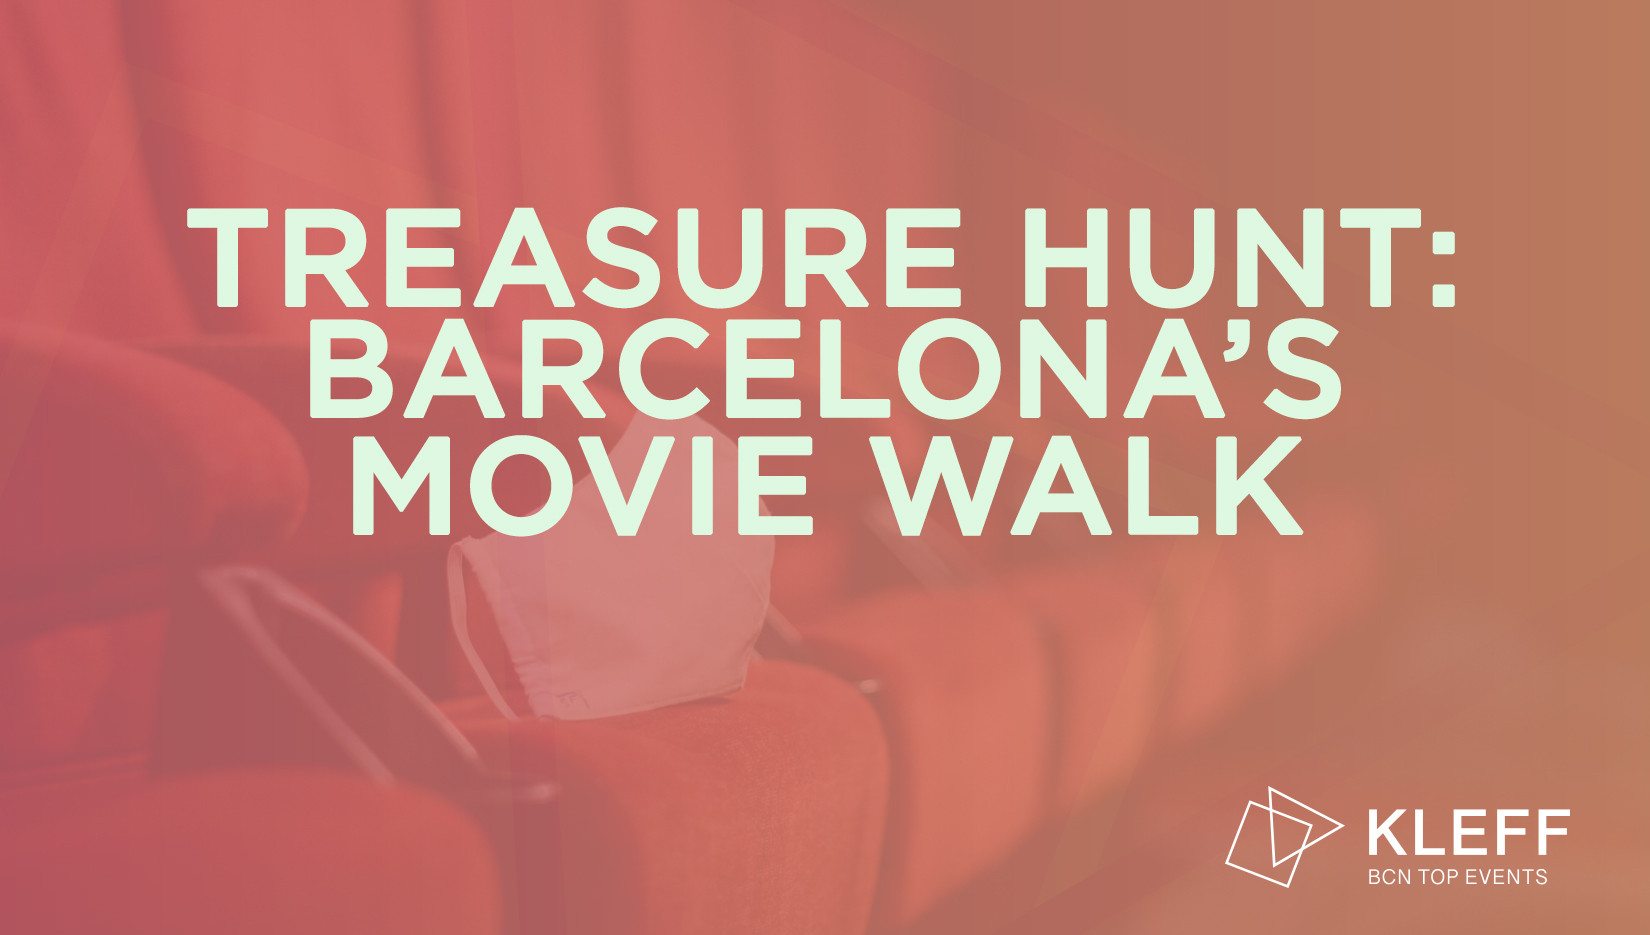 TREASURE HUNT: BARCELONA'S MOVIE WALK